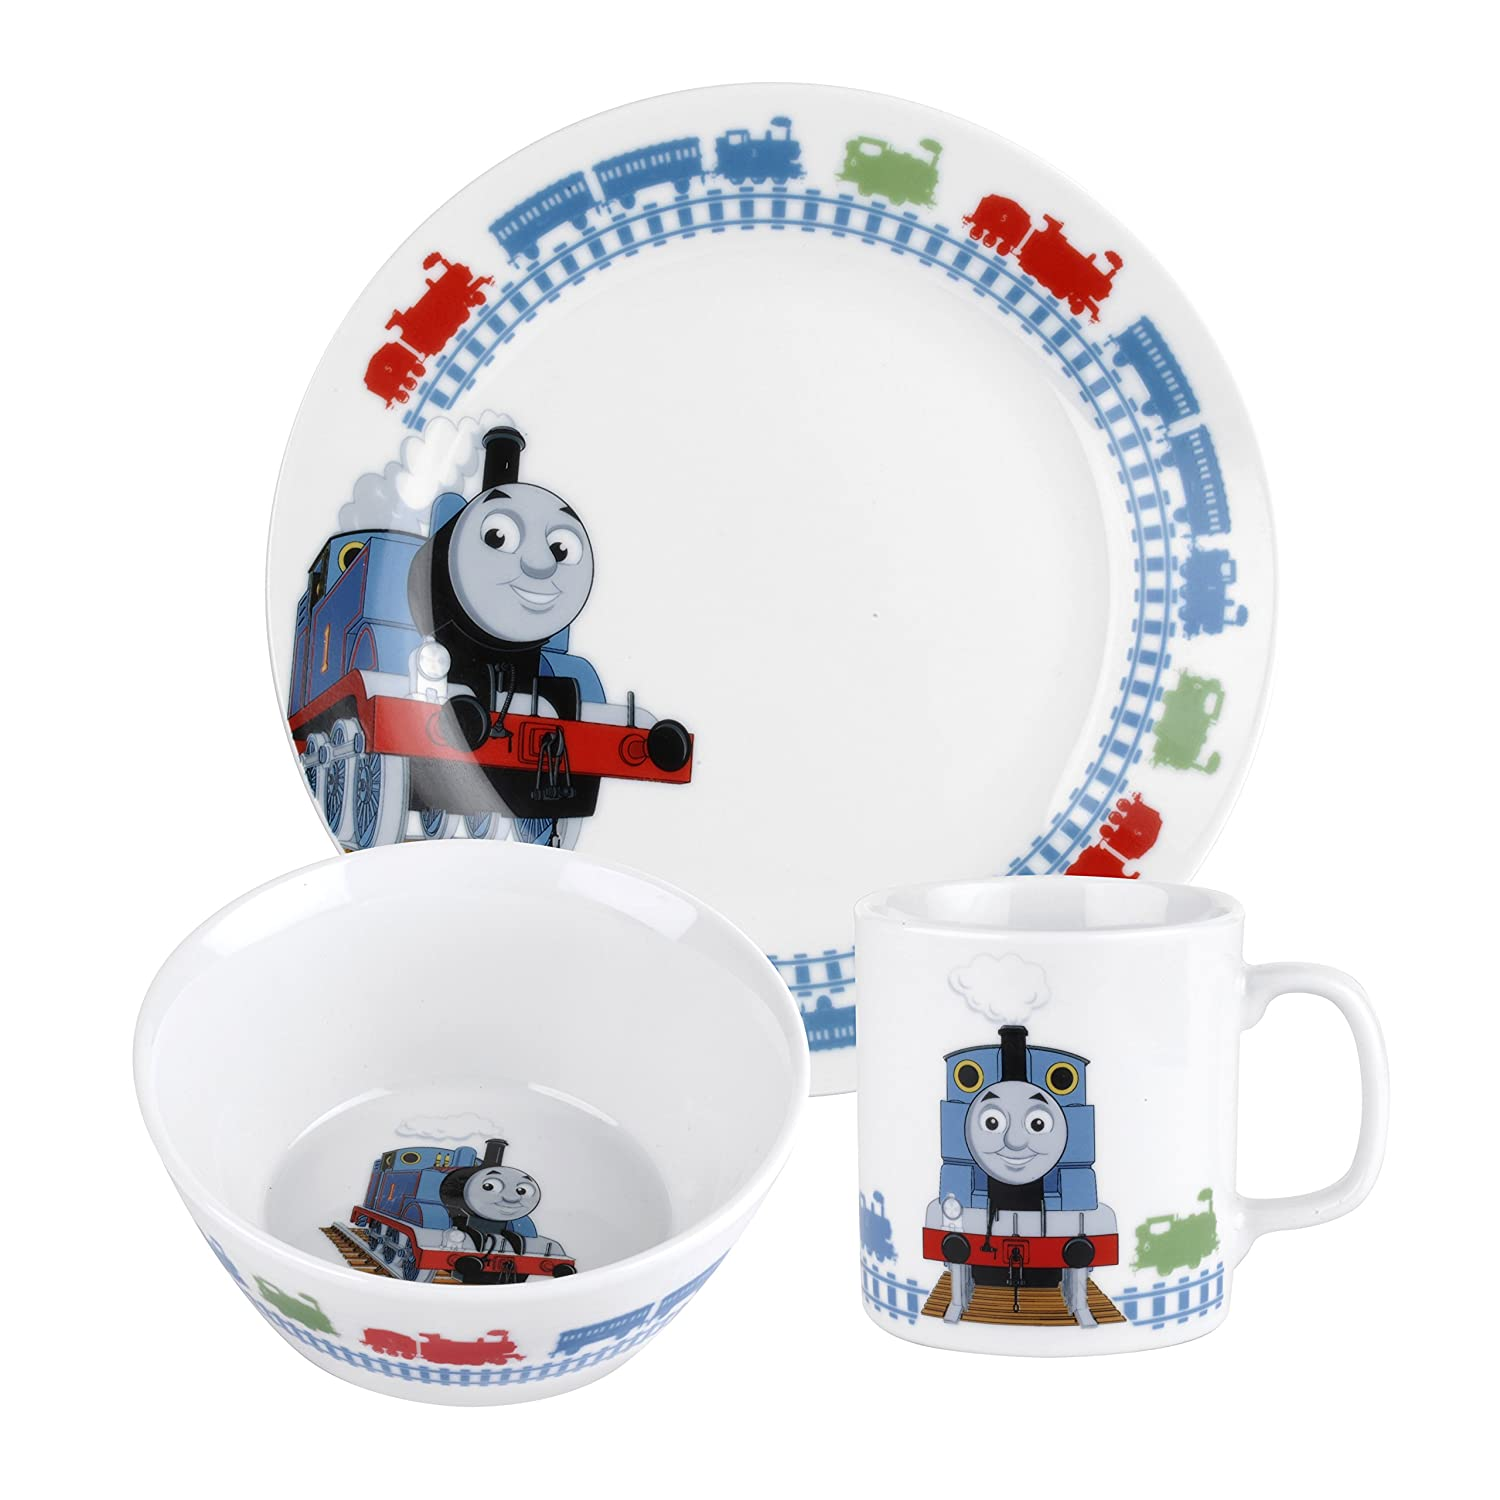 Royal Worcester 3-Piece Thomas the Tank Engine Childrens Dinner Set Multi-Colour Amazon.co.uk Kitchen u0026 Home  sc 1 st  Amazon UK & Royal Worcester 3-Piece Thomas the Tank Engine Childrens Dinner Set ...